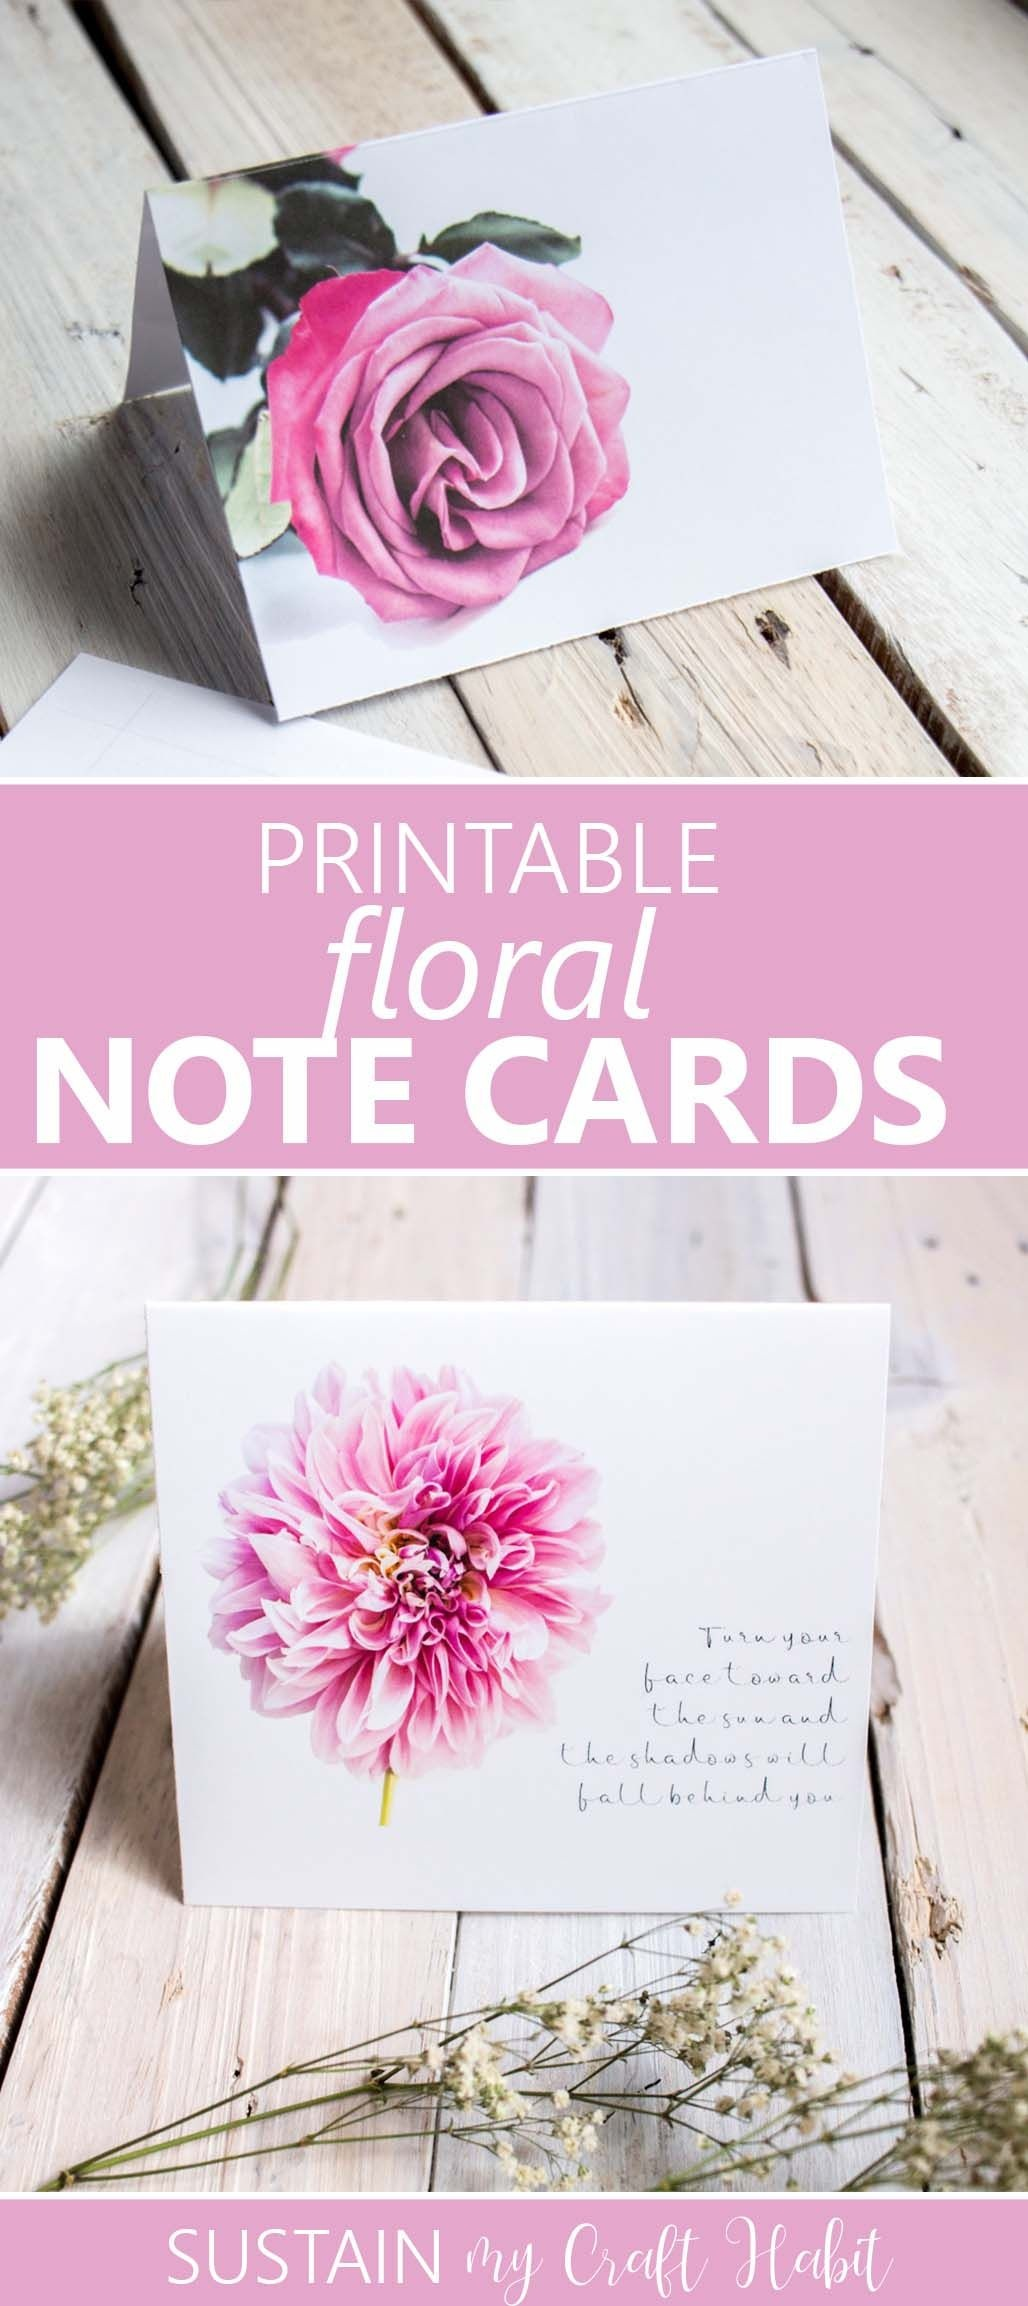 Printable Floral Note Cards | Free Printables  | Pinterest - Free Printable Note Cards